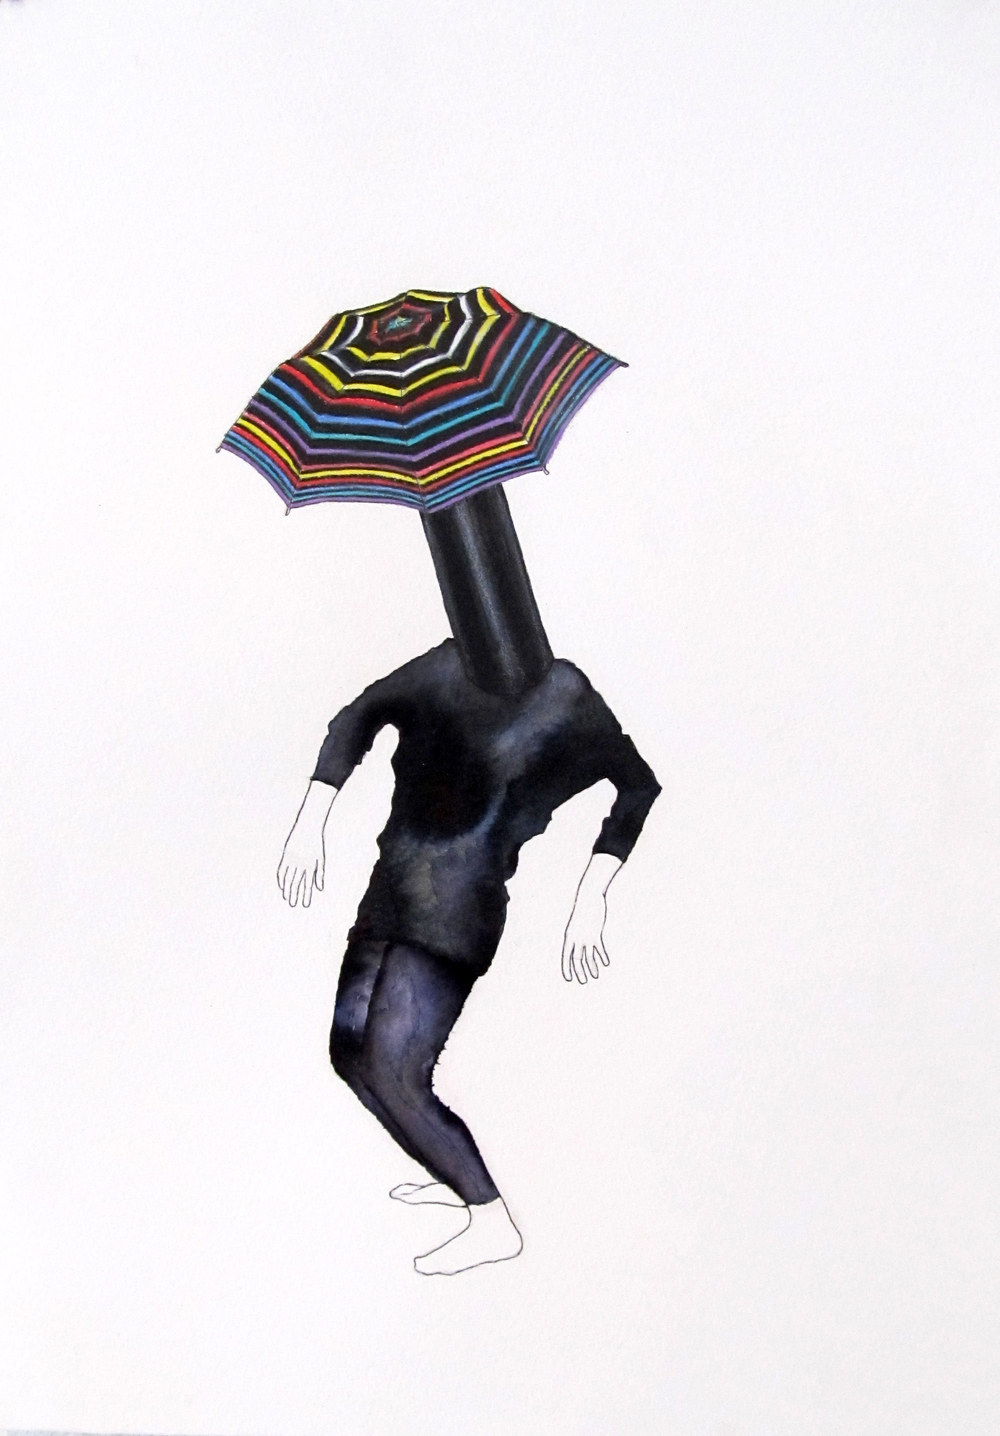 Umbrella-head (wise class clown) / 24 x 34 cm / Colored pencil & ink on paper